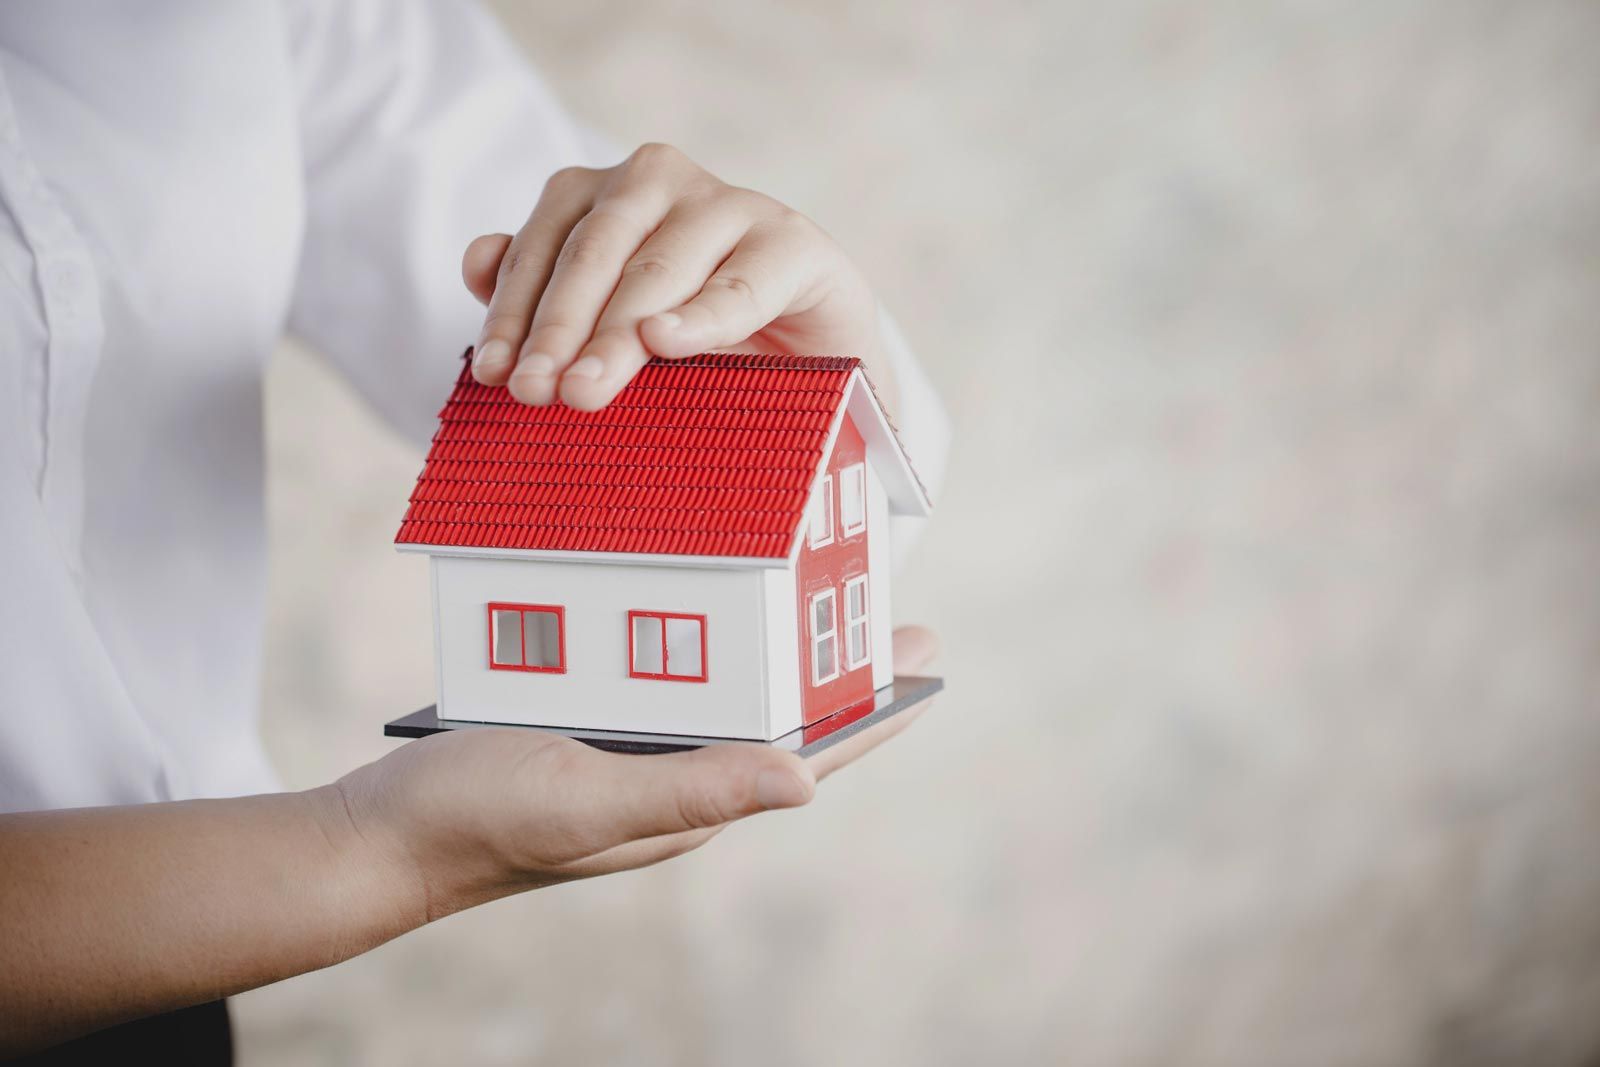 Home Refinance Options For Those With Poor Credit